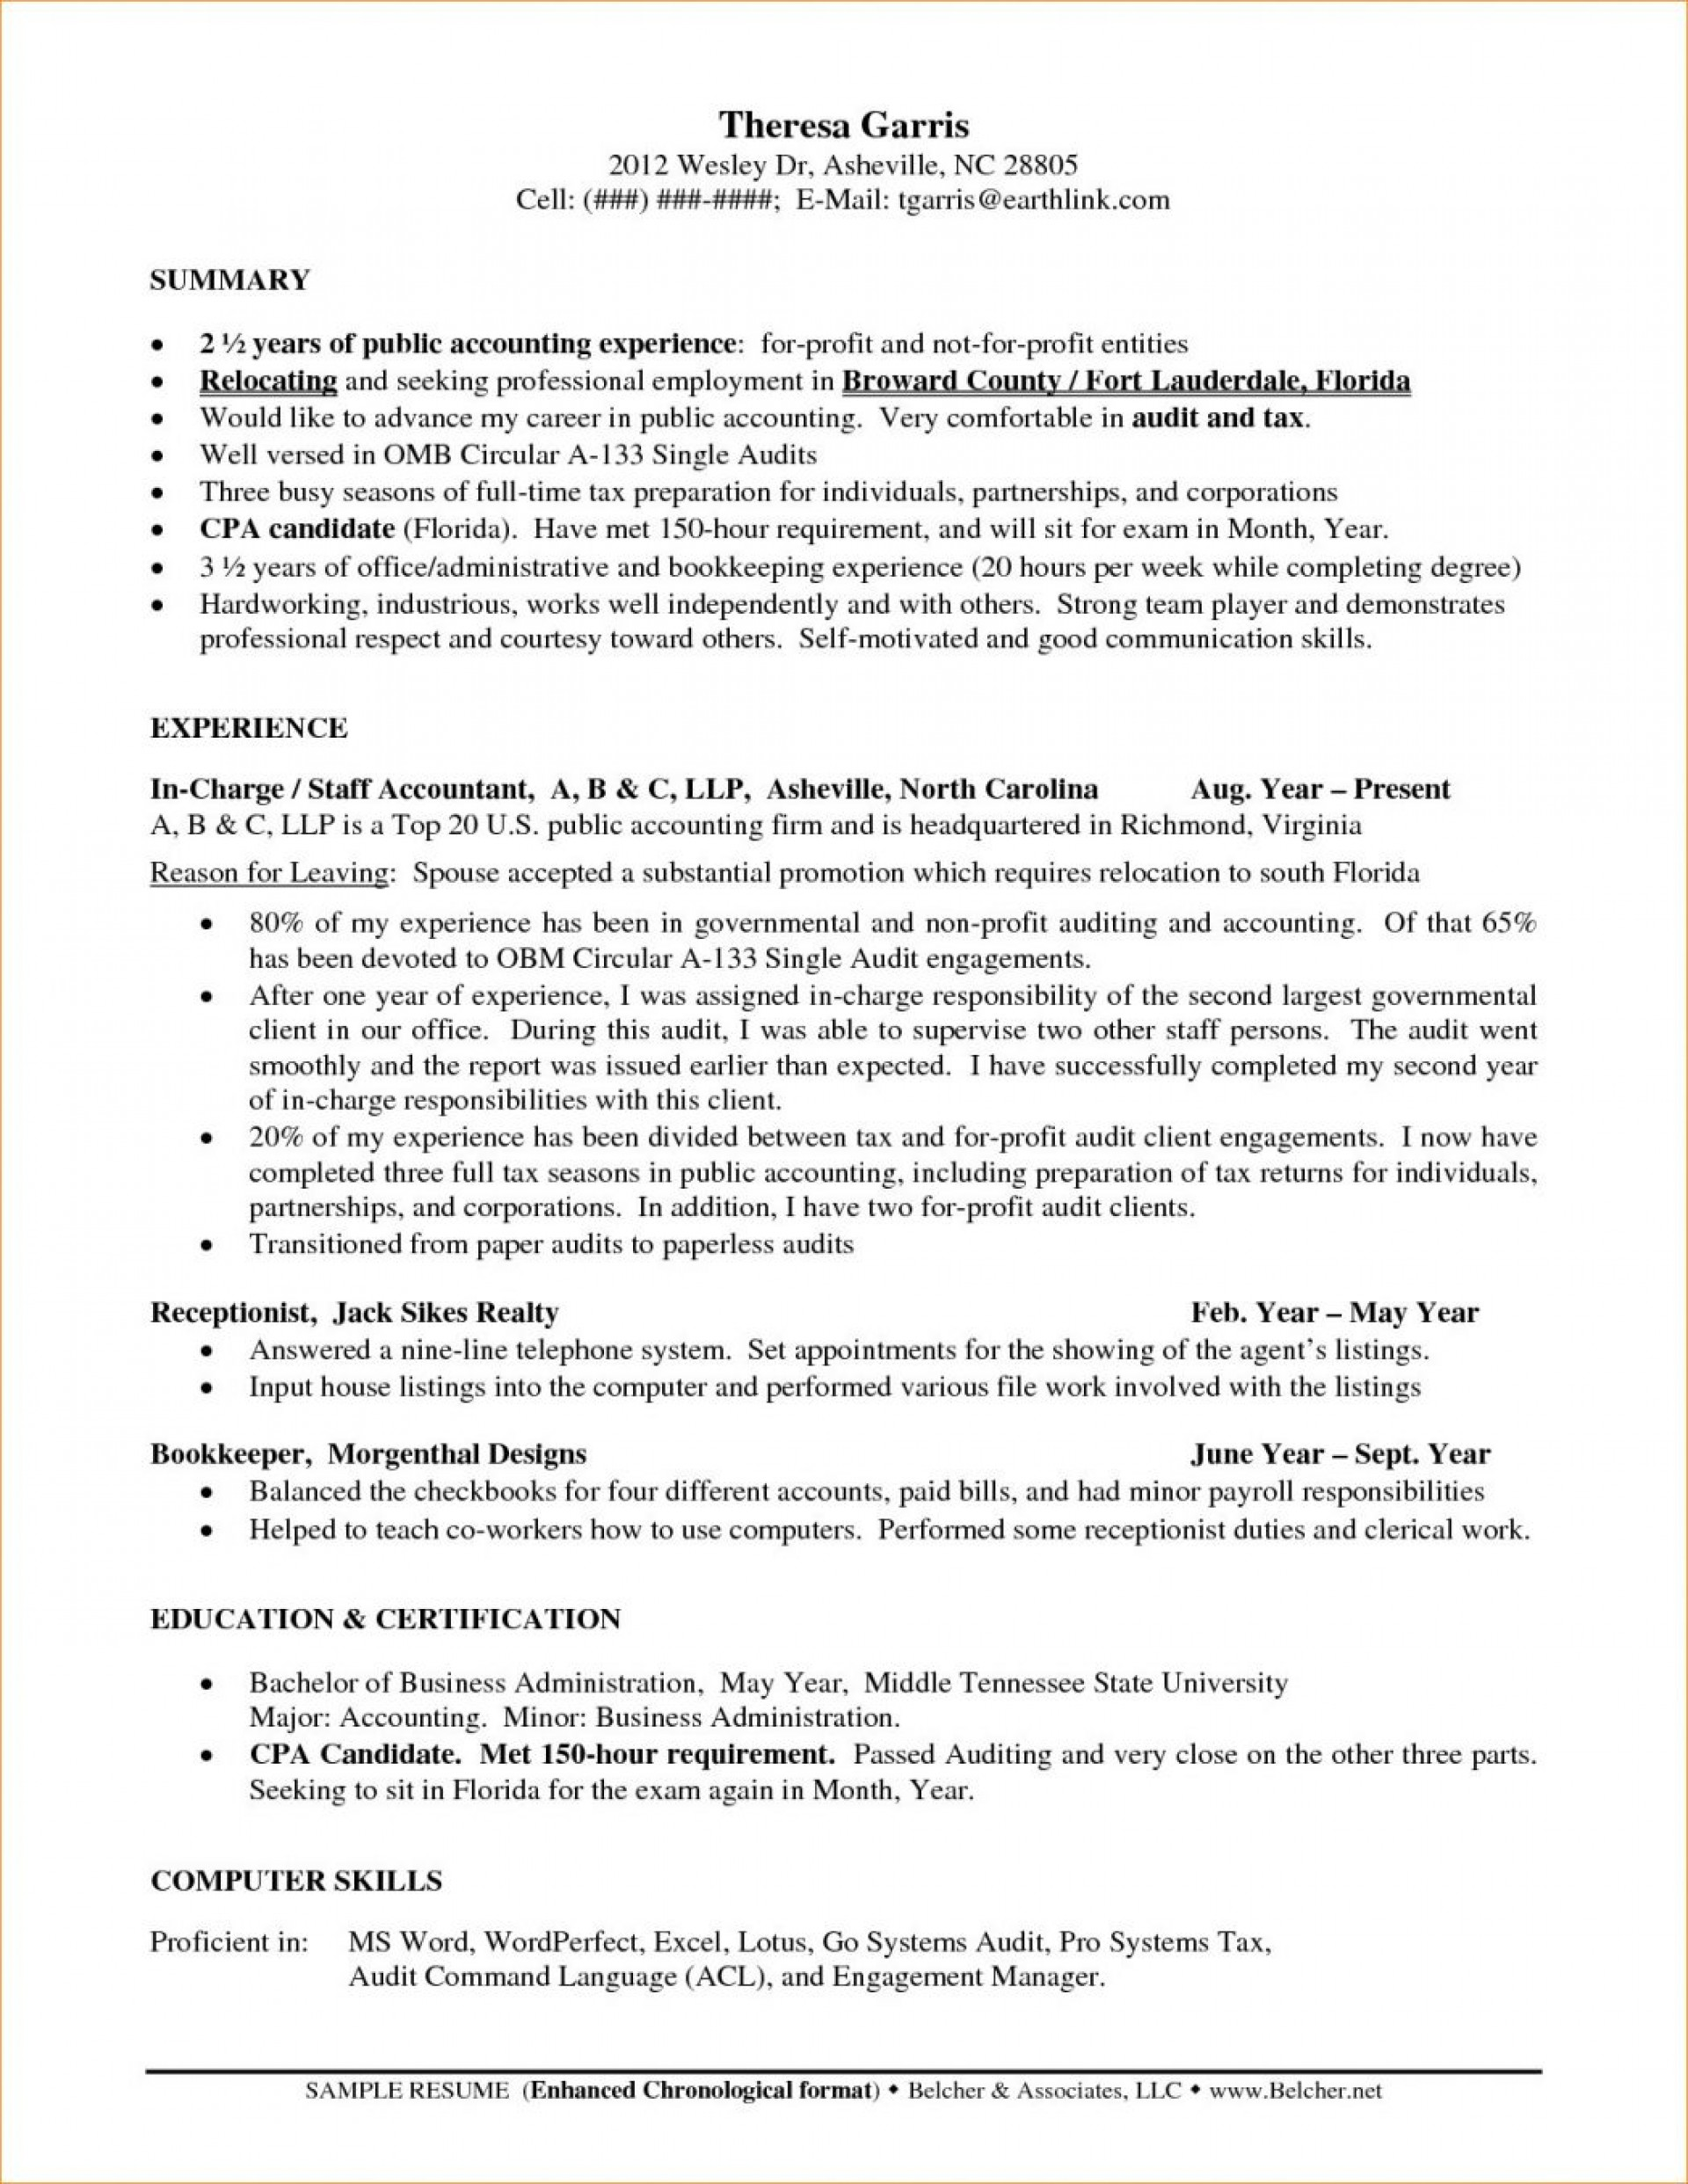 024 Essay Example Best Solutions Of Professional Mba Reflective Help Mri Tech Writing On Teaching Sample Cover Grea Leadership Introduction Using Gibbs Model In Third Person Work Experience Beautiful Examples For Middle School Apa High 1920